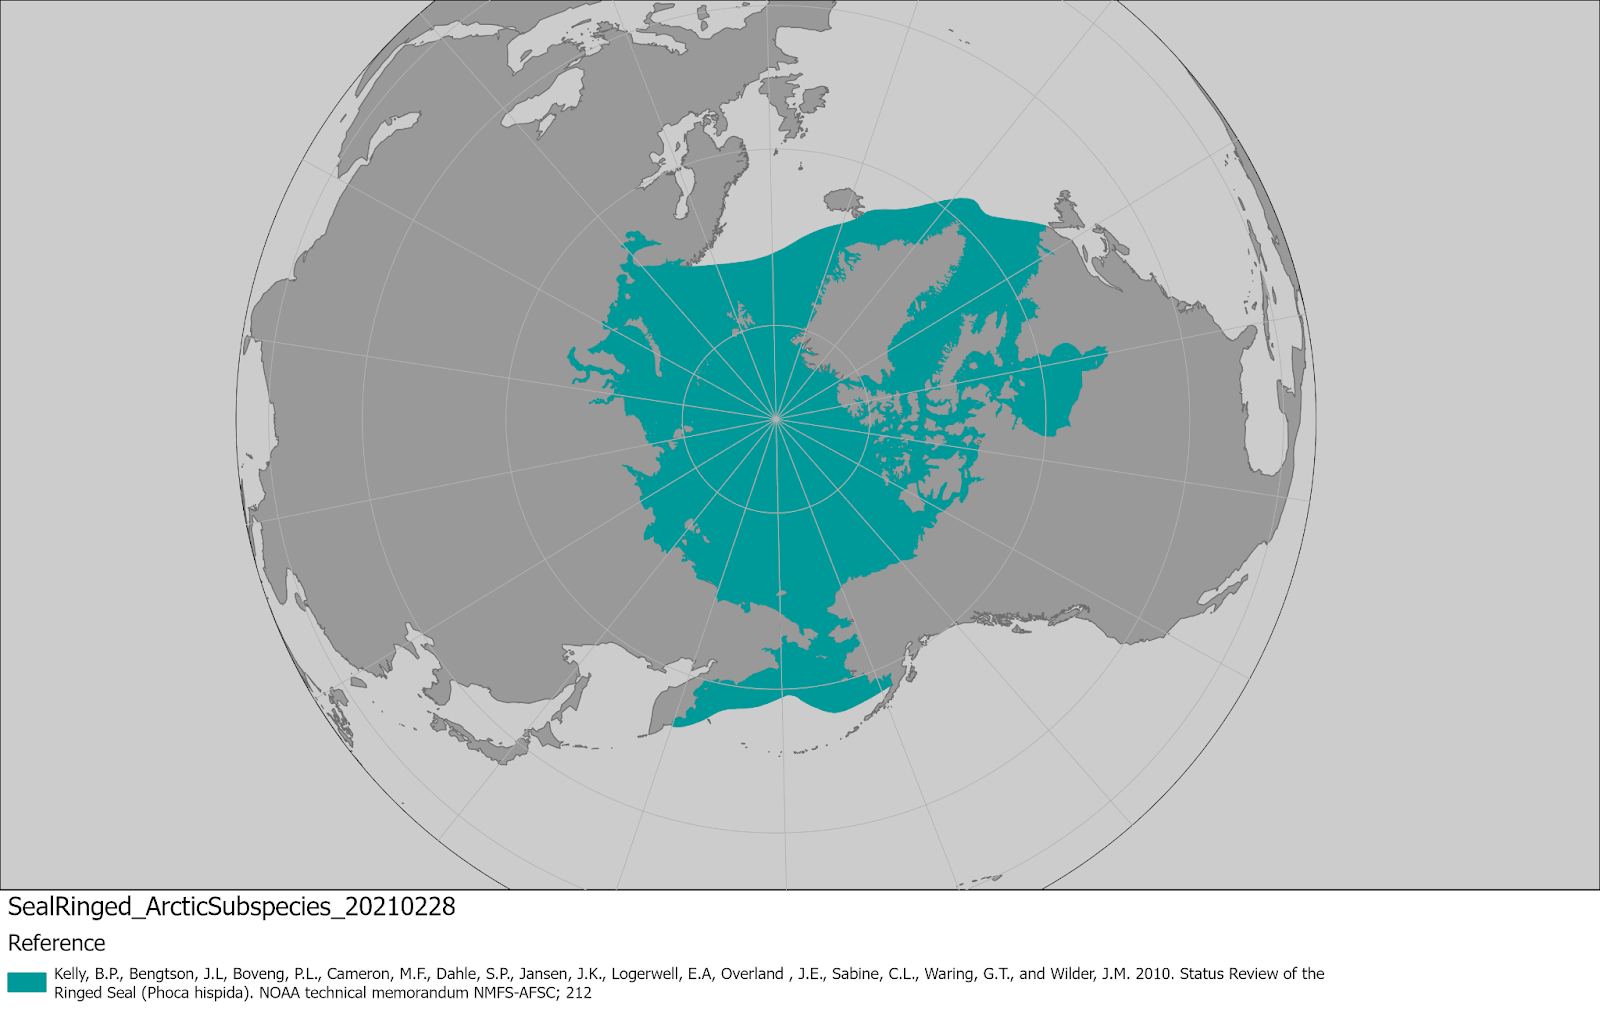 World map providing approximate representation of the Arctic subspecies of ringed seal